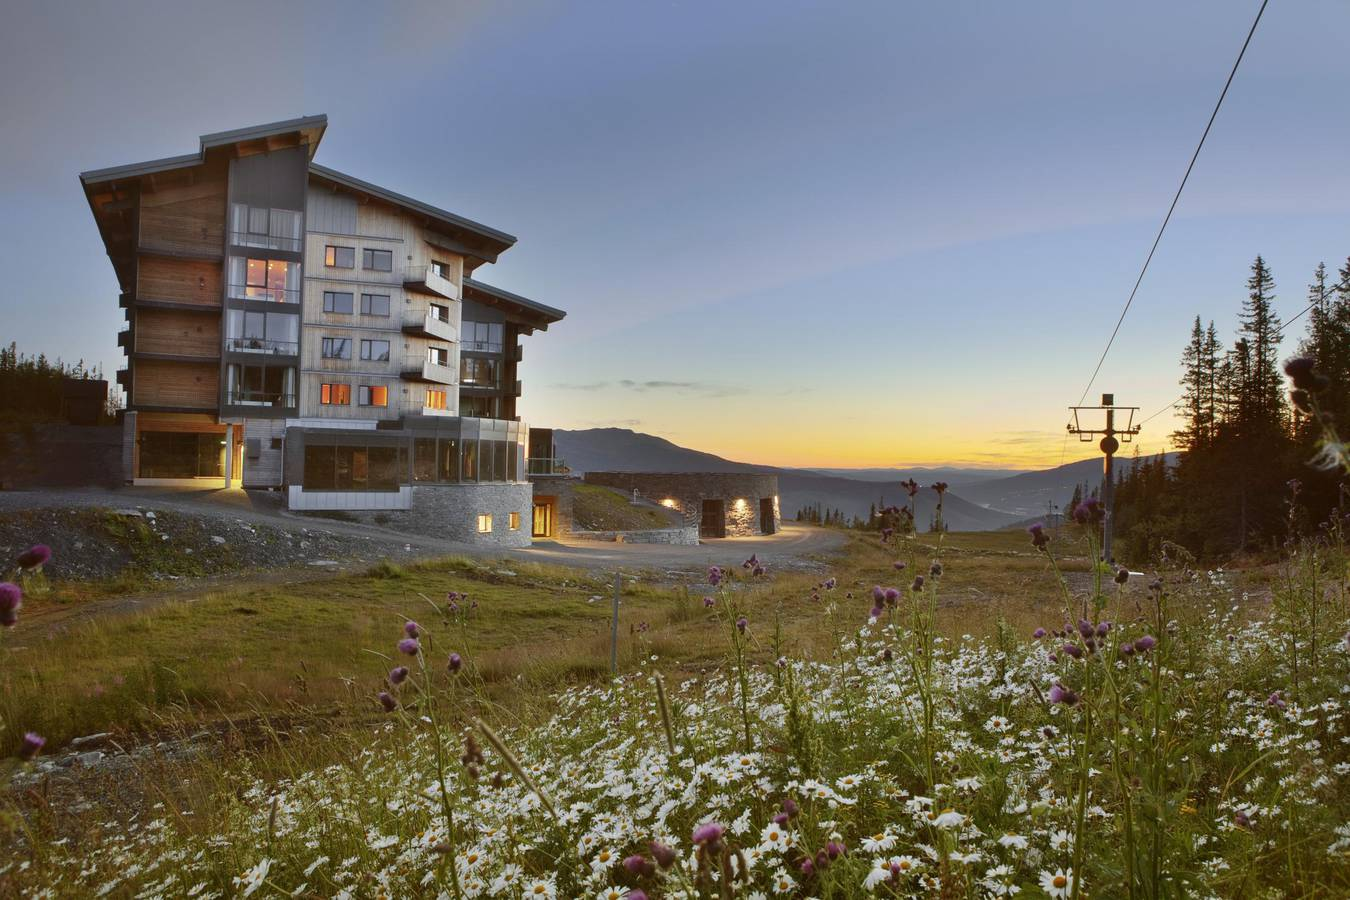 Summer night at Copperhill Mountain Lodge, Åre